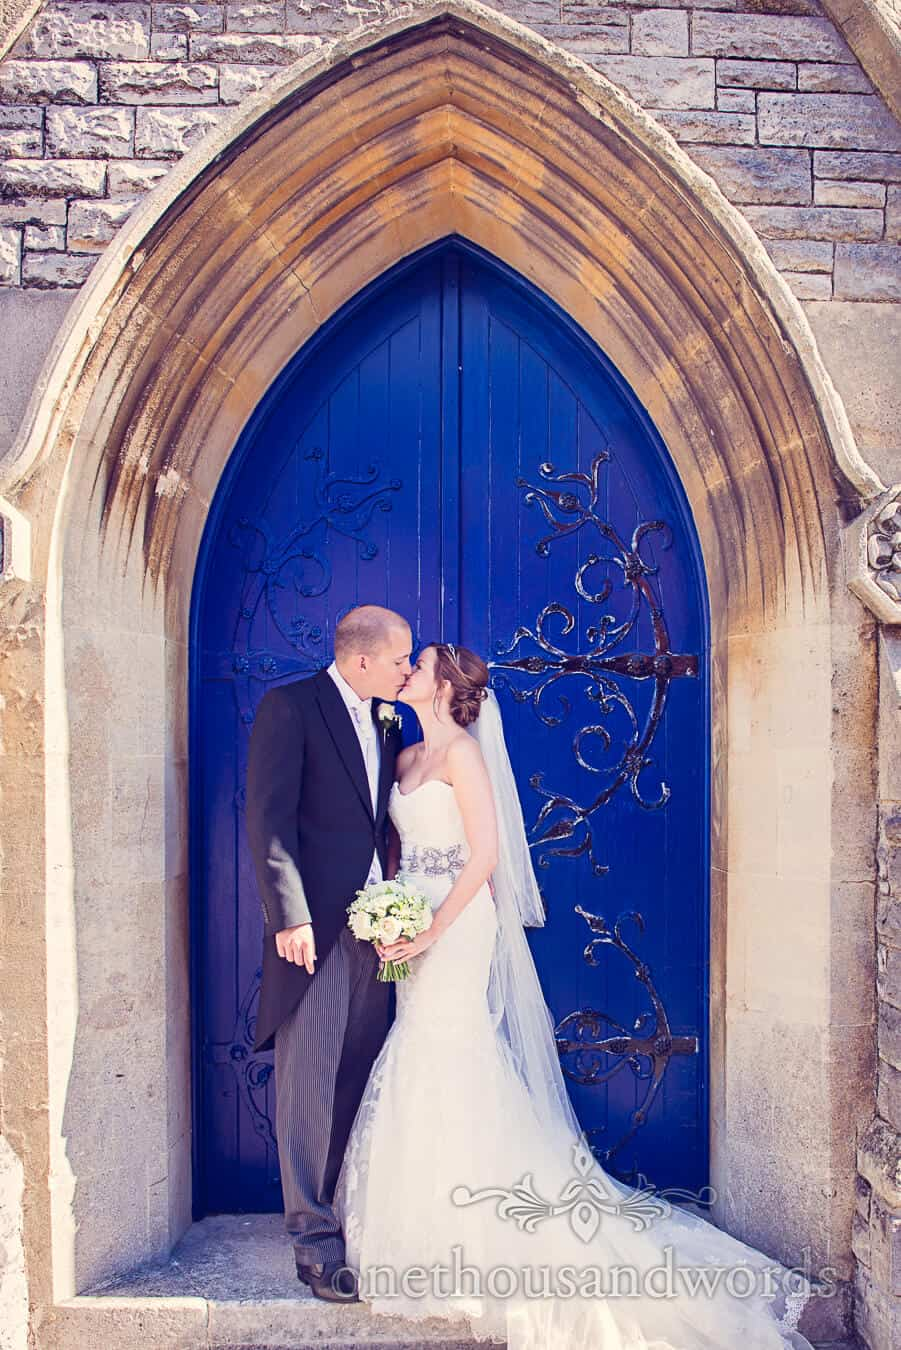 Bride and groom kiss in blue arch church doorway